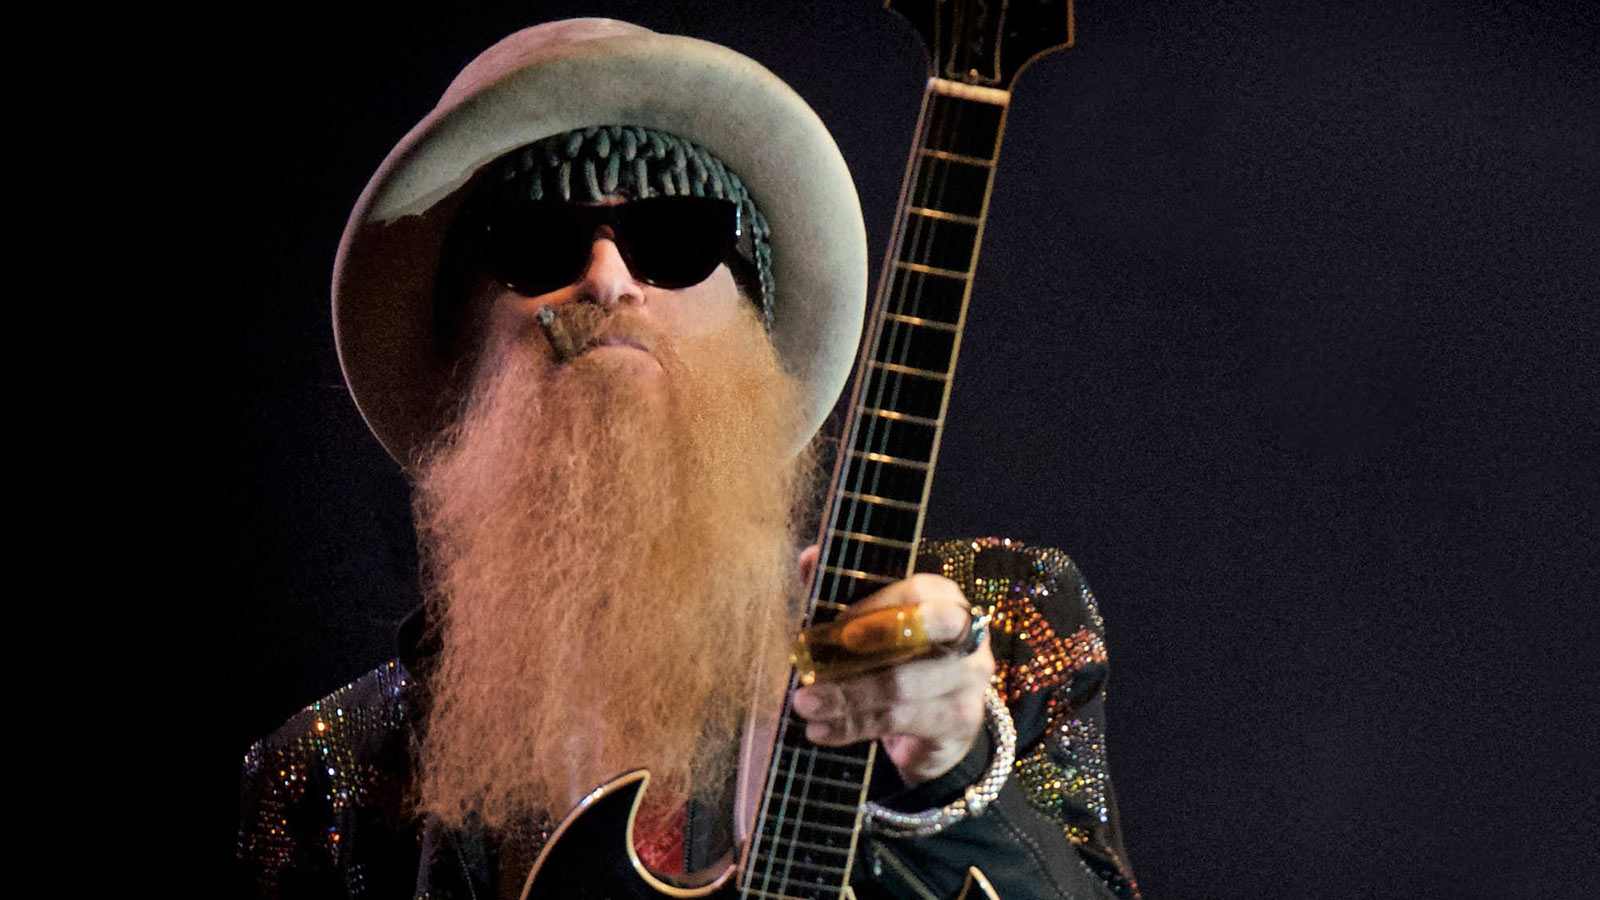 ZZ Top Legend Billy Gibbons Breaks Down New Solo Album, 'The Big Bad Blues'